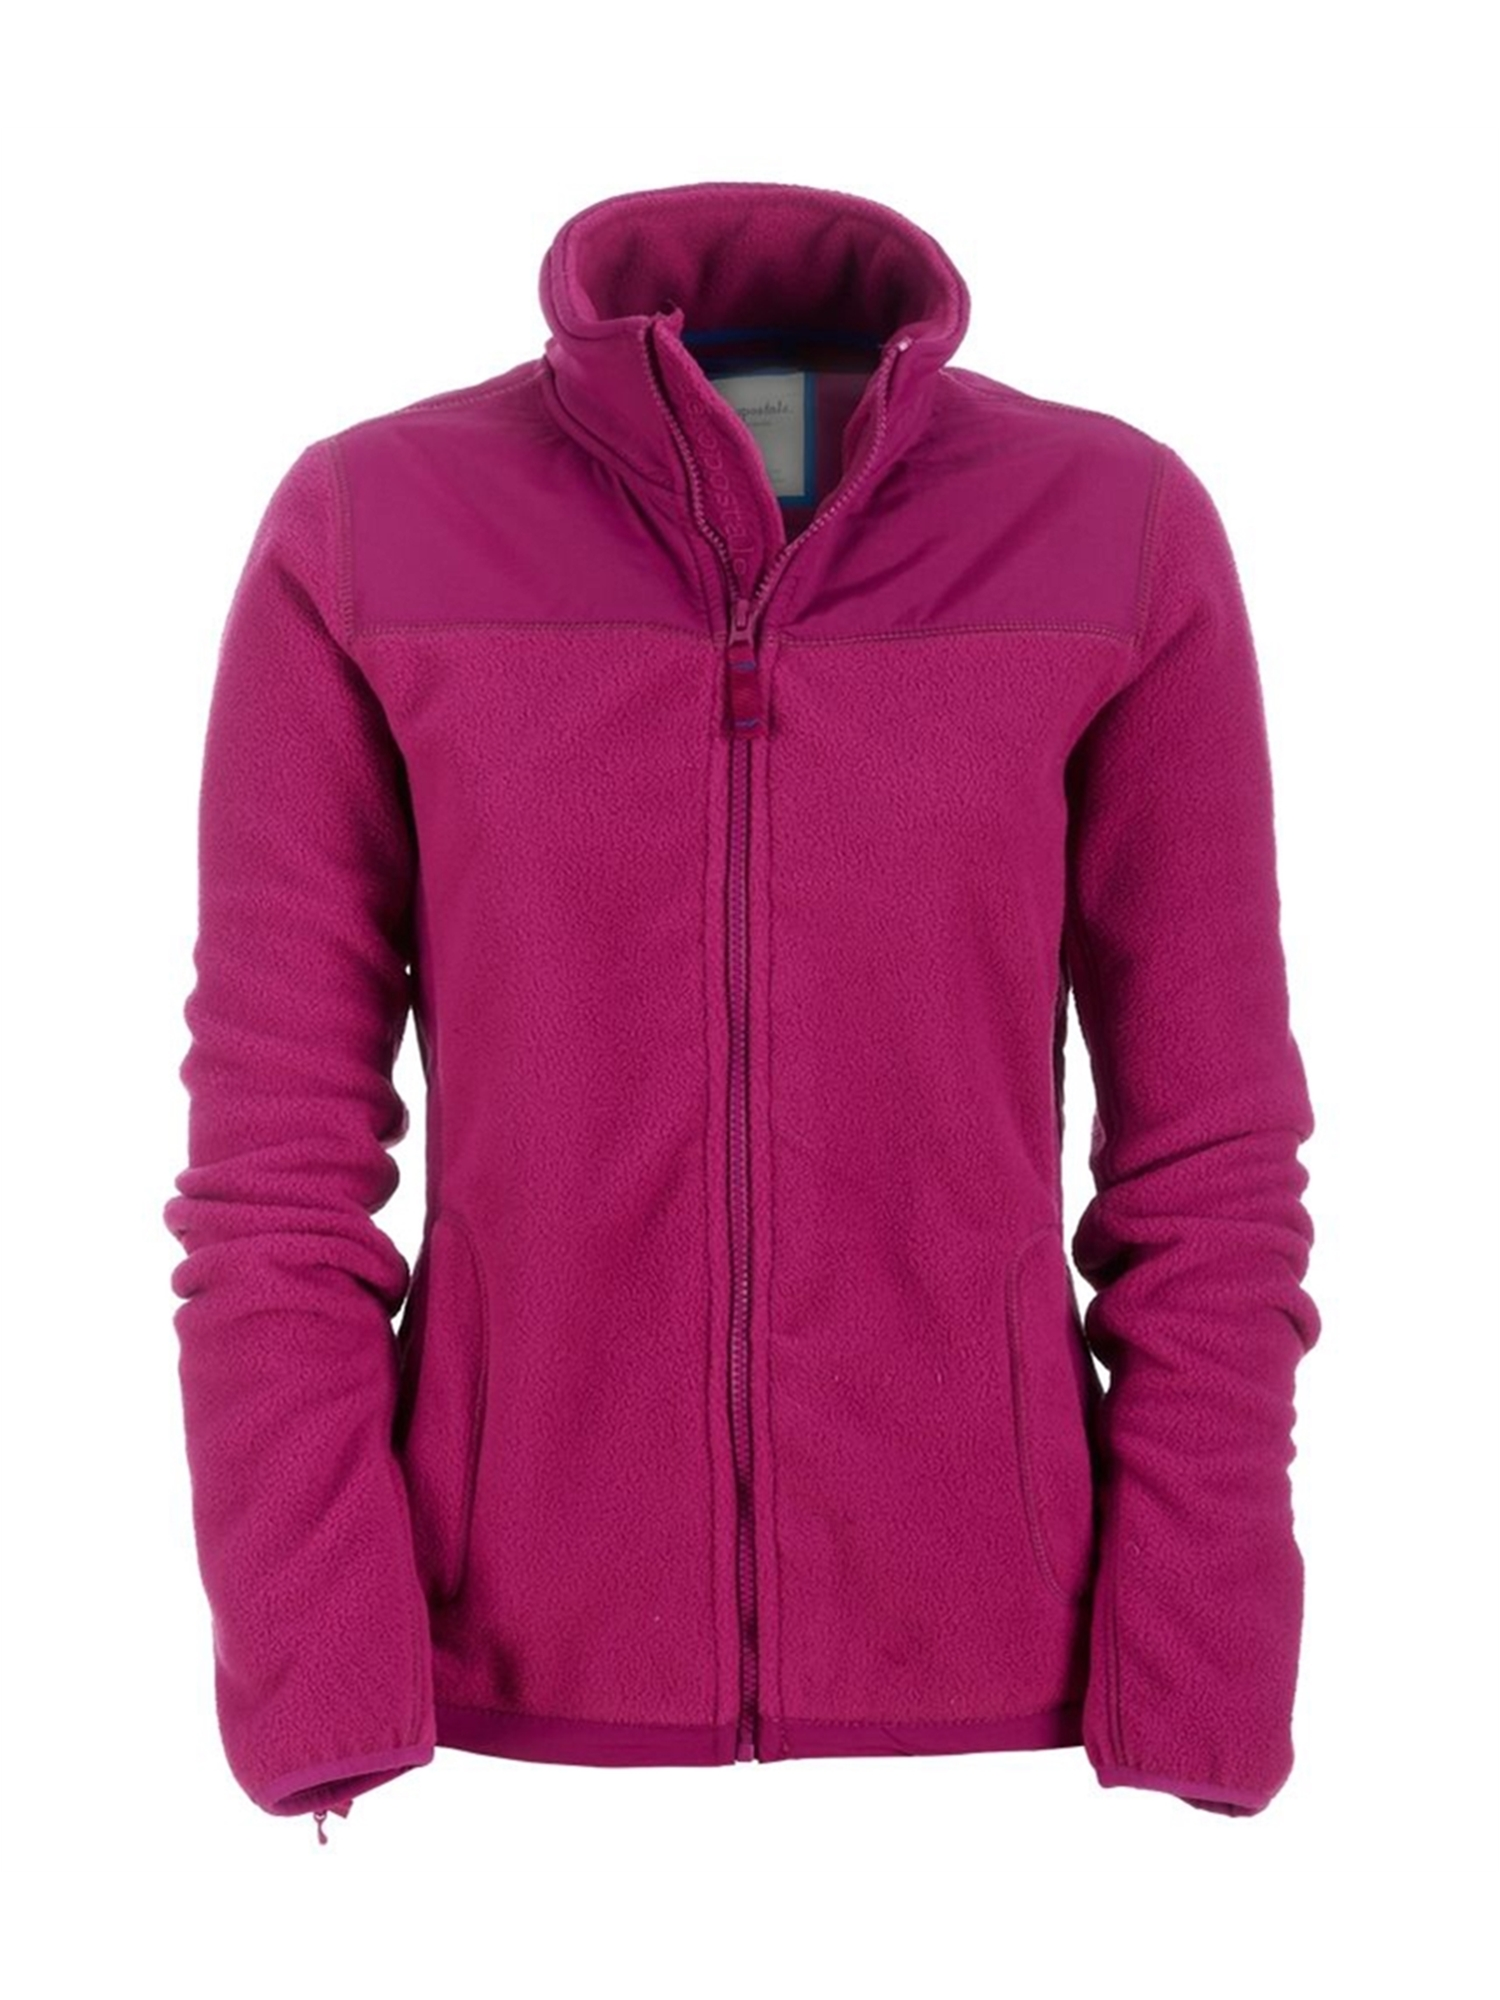 Aeropostale Juniors Fleece Full Zip Lightweight Field Jacket